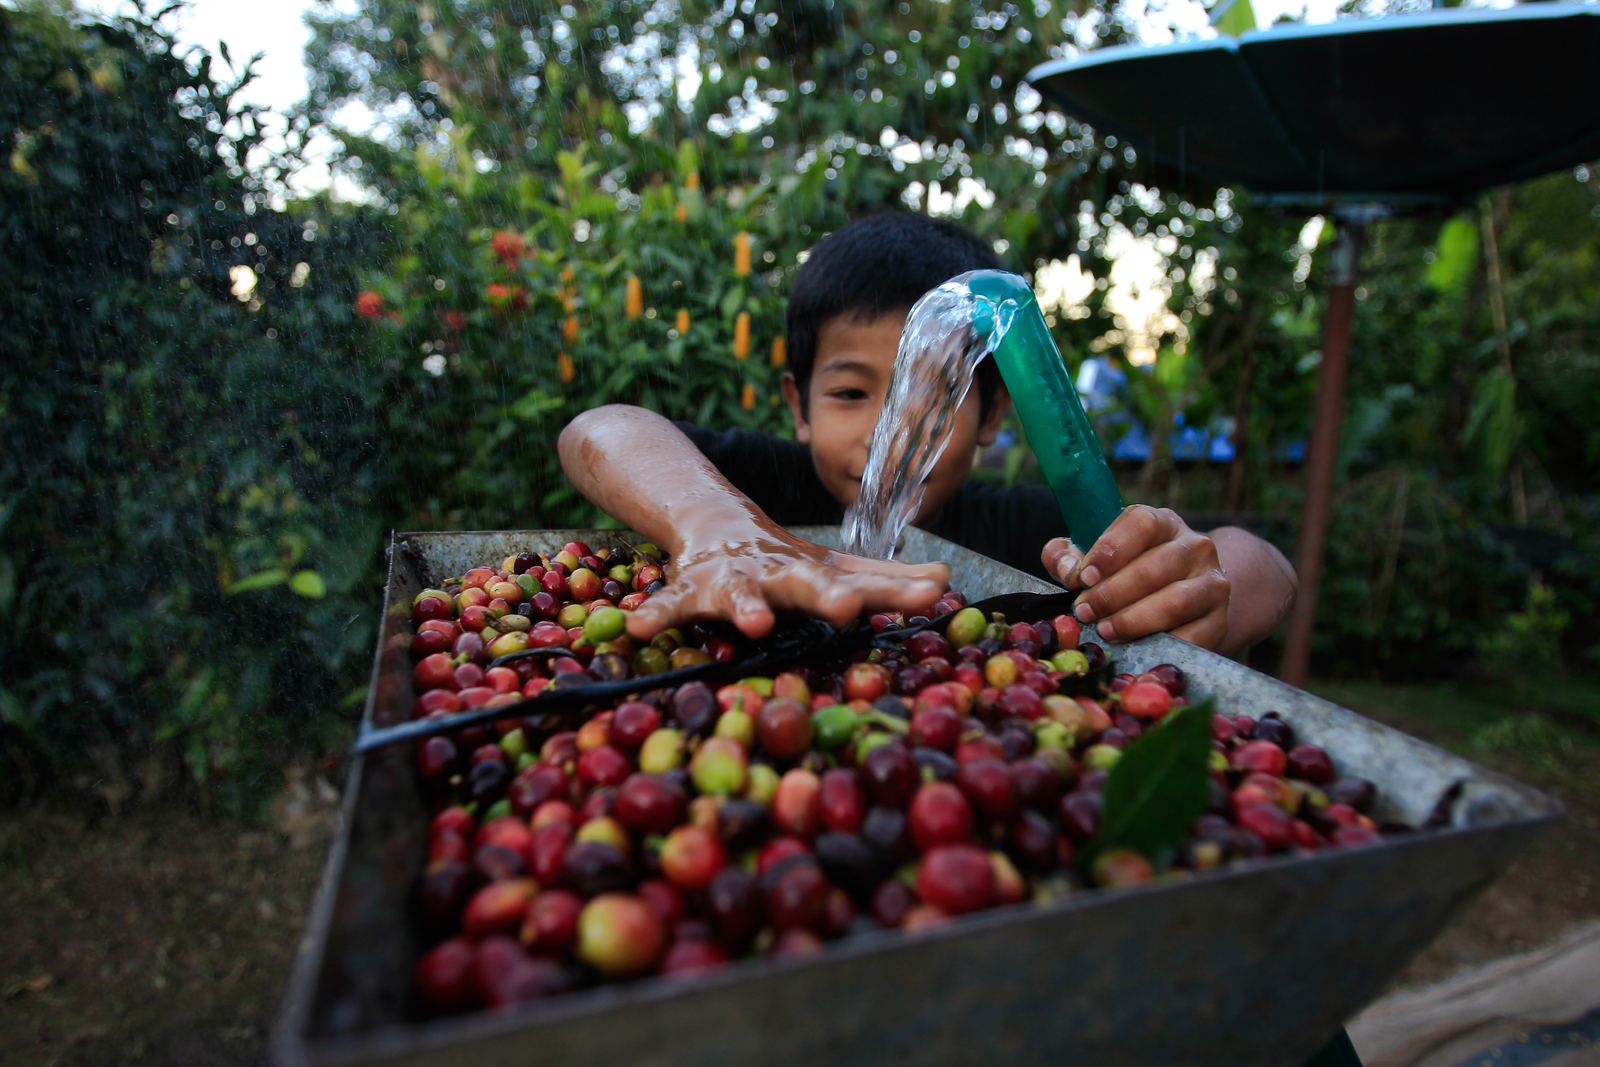 A young boy washing coffee berries with a hose